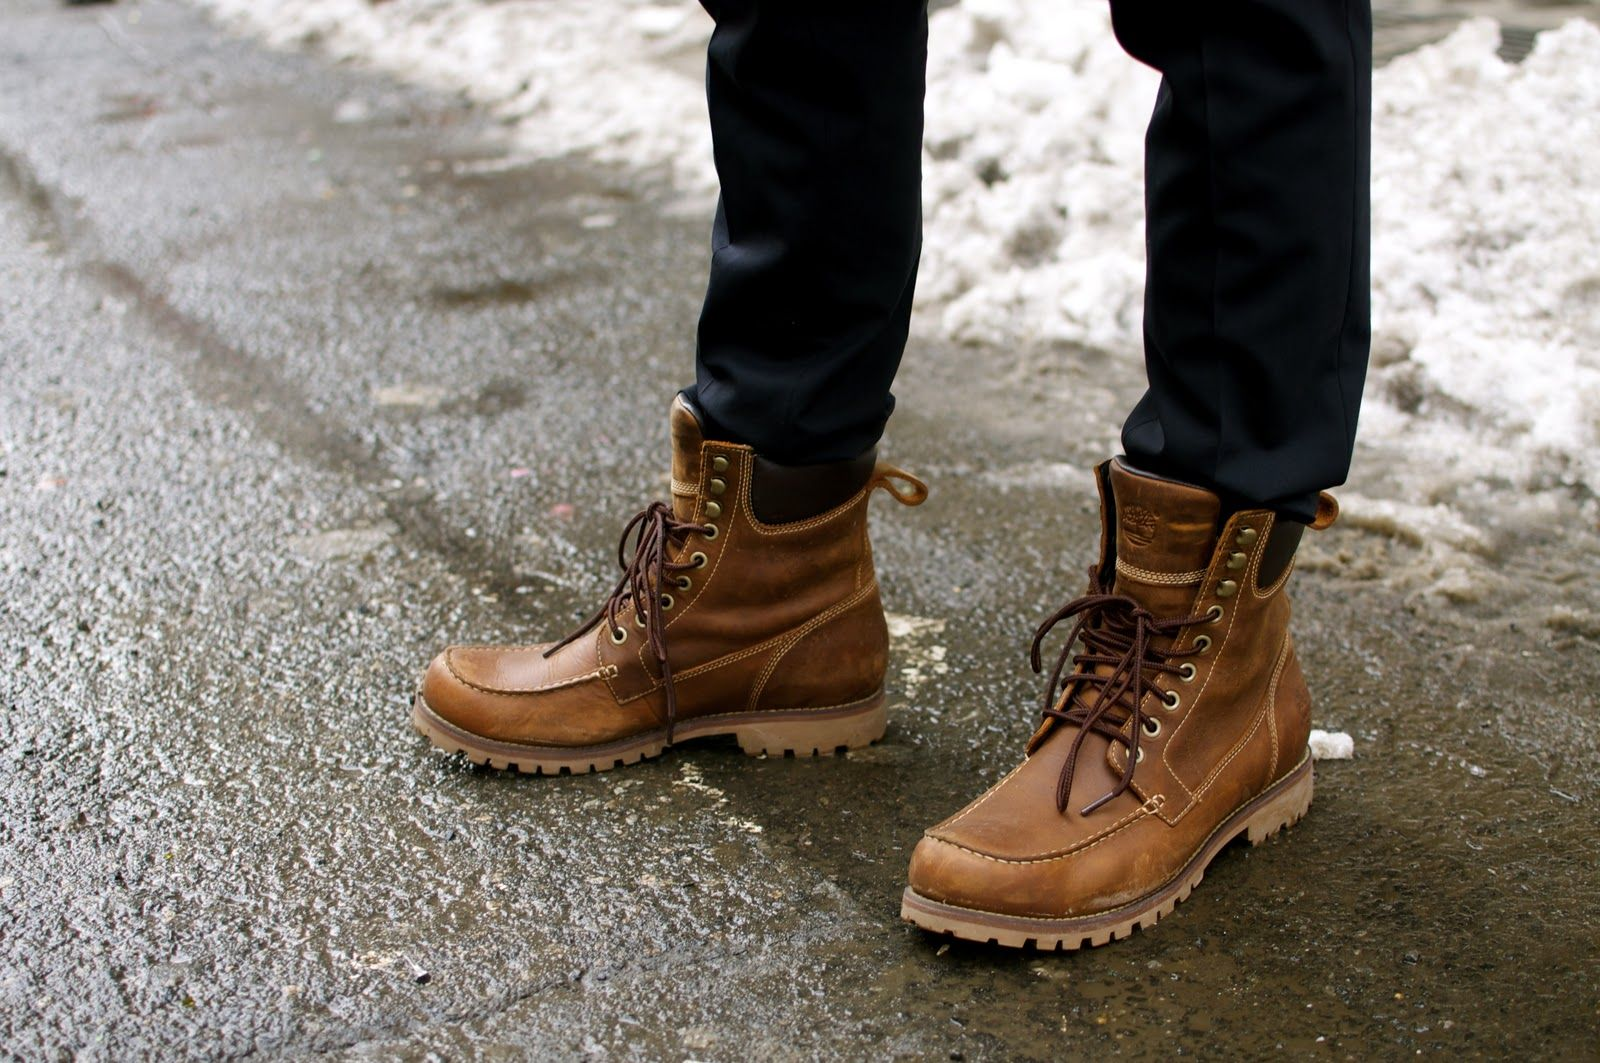 2019 year lifestyle- Stylish mens winter boots